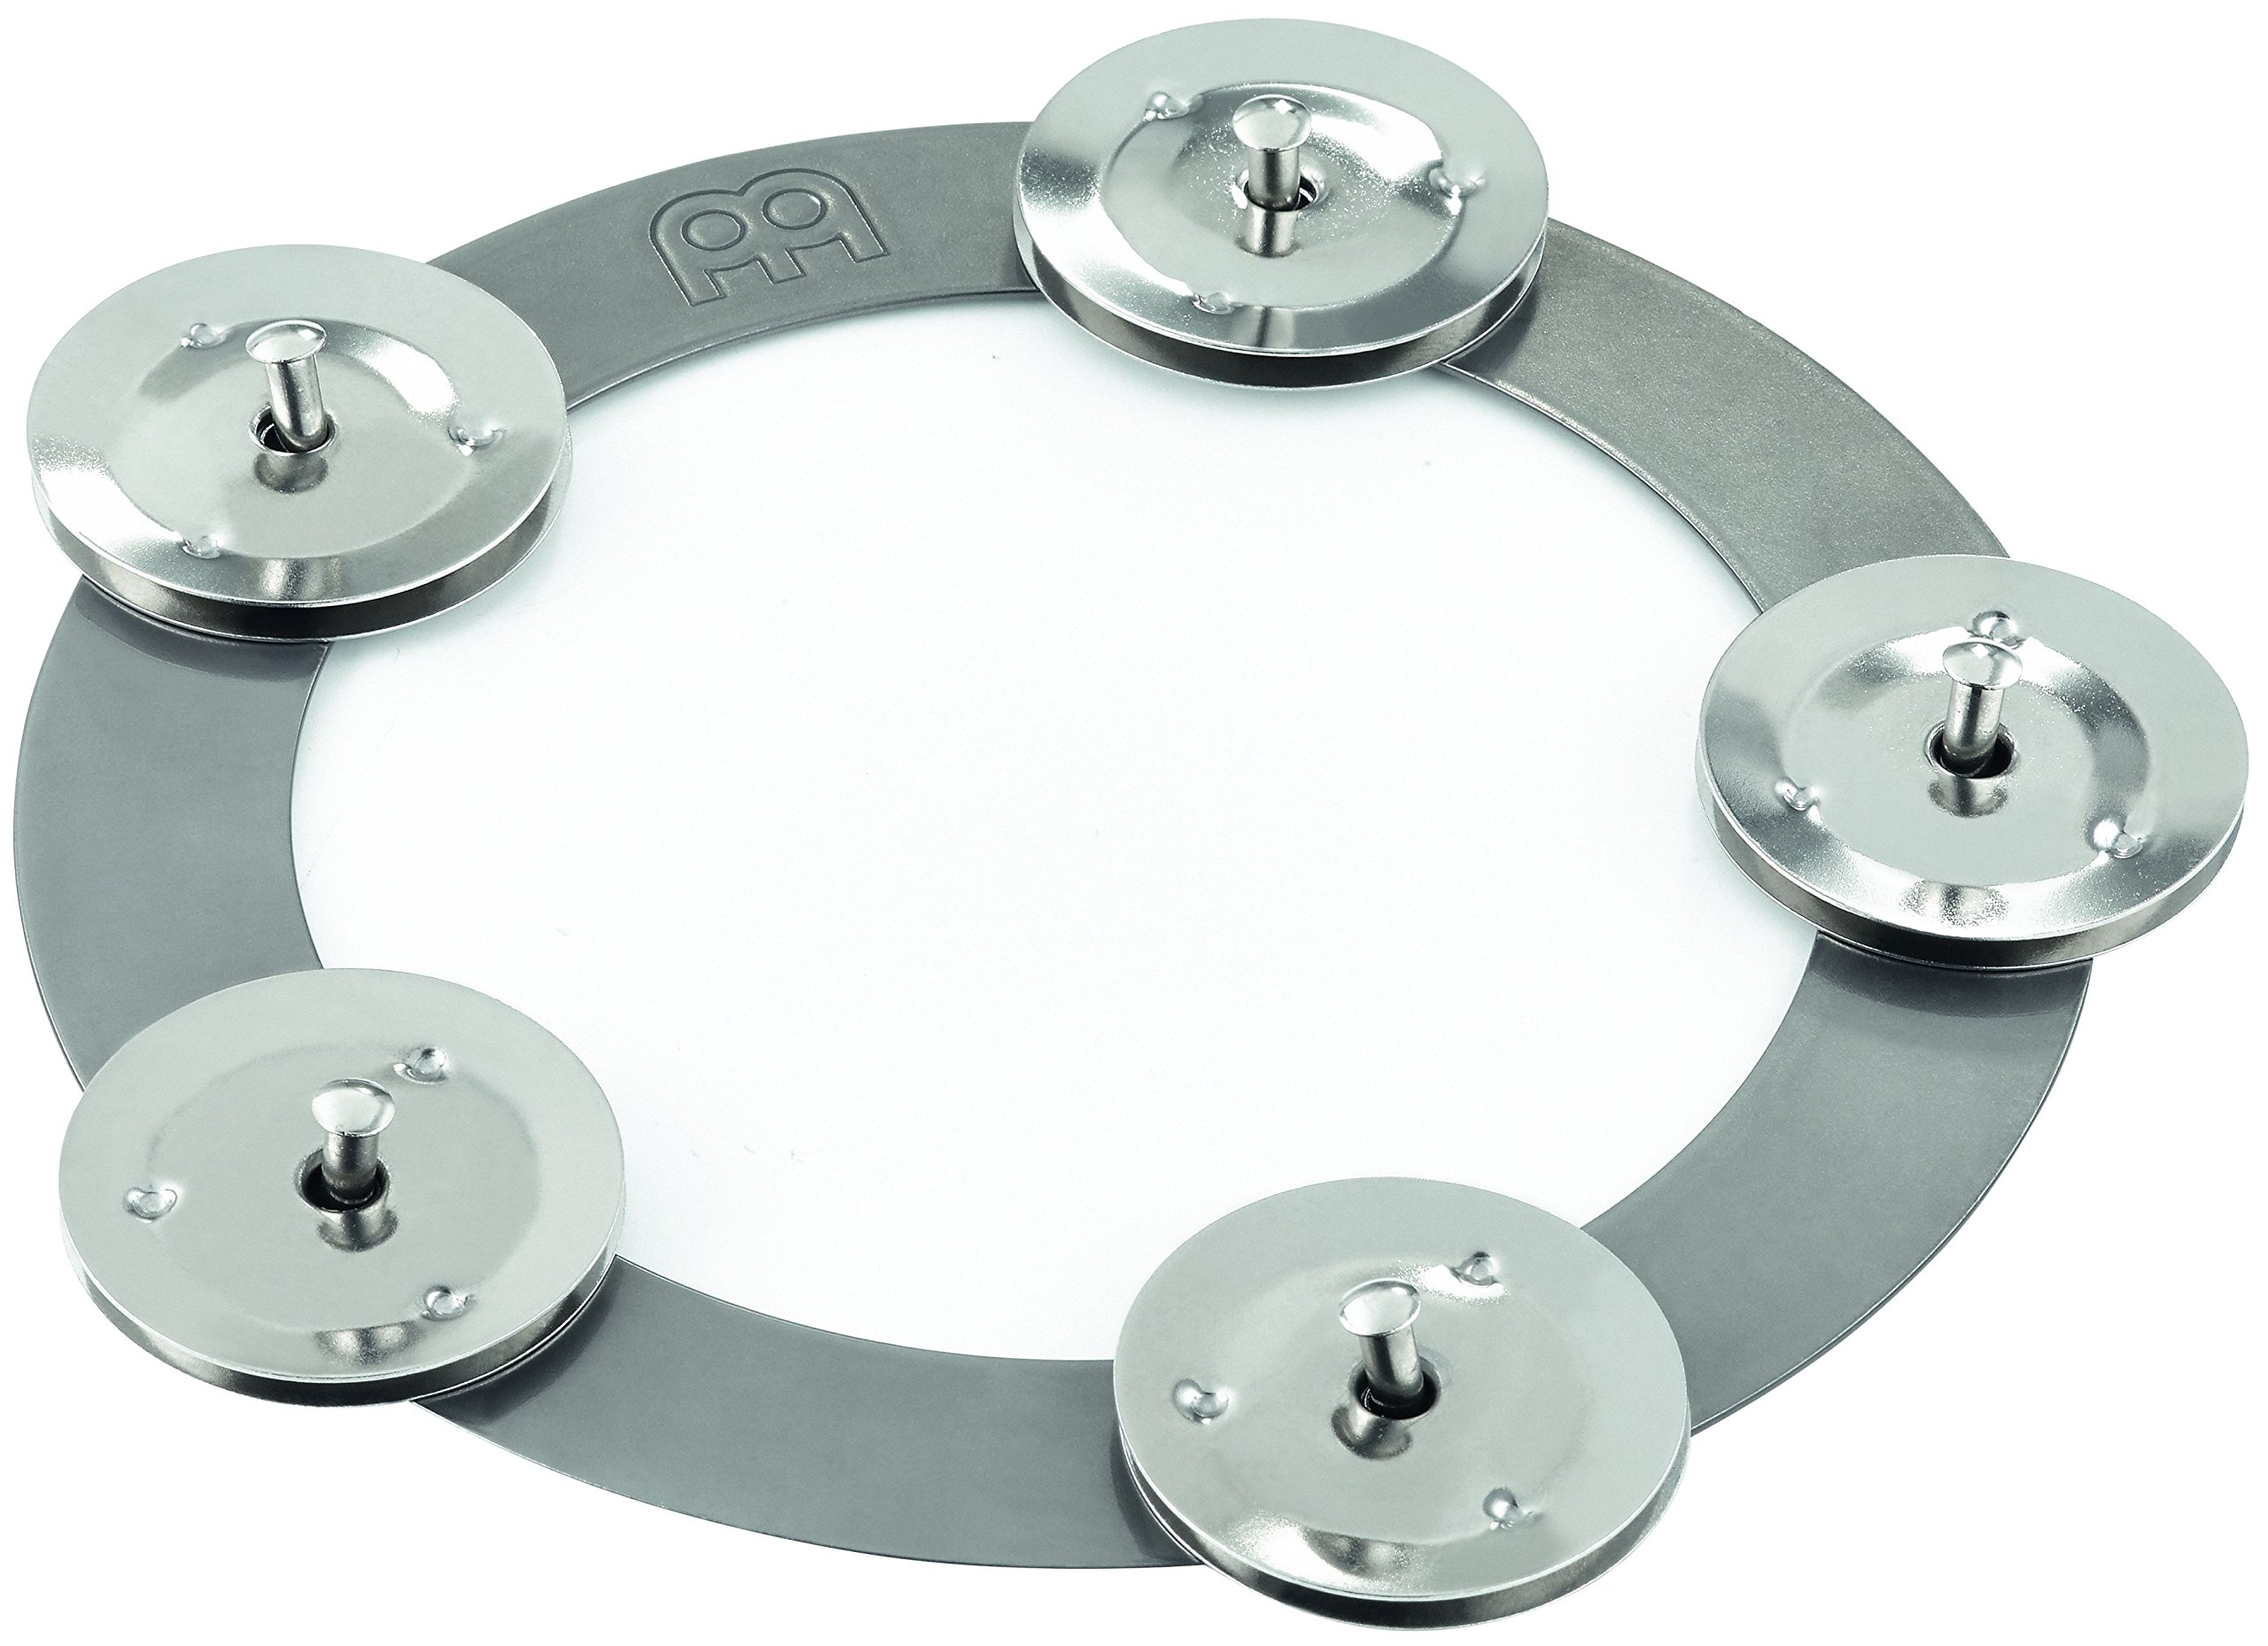 Meinl Cymbals Ching Ring - Steel Tambourine Jingle Effect for Hihats, Crashes, Rides and Cymbal Stacks, CRING) by Meinl Cymbals